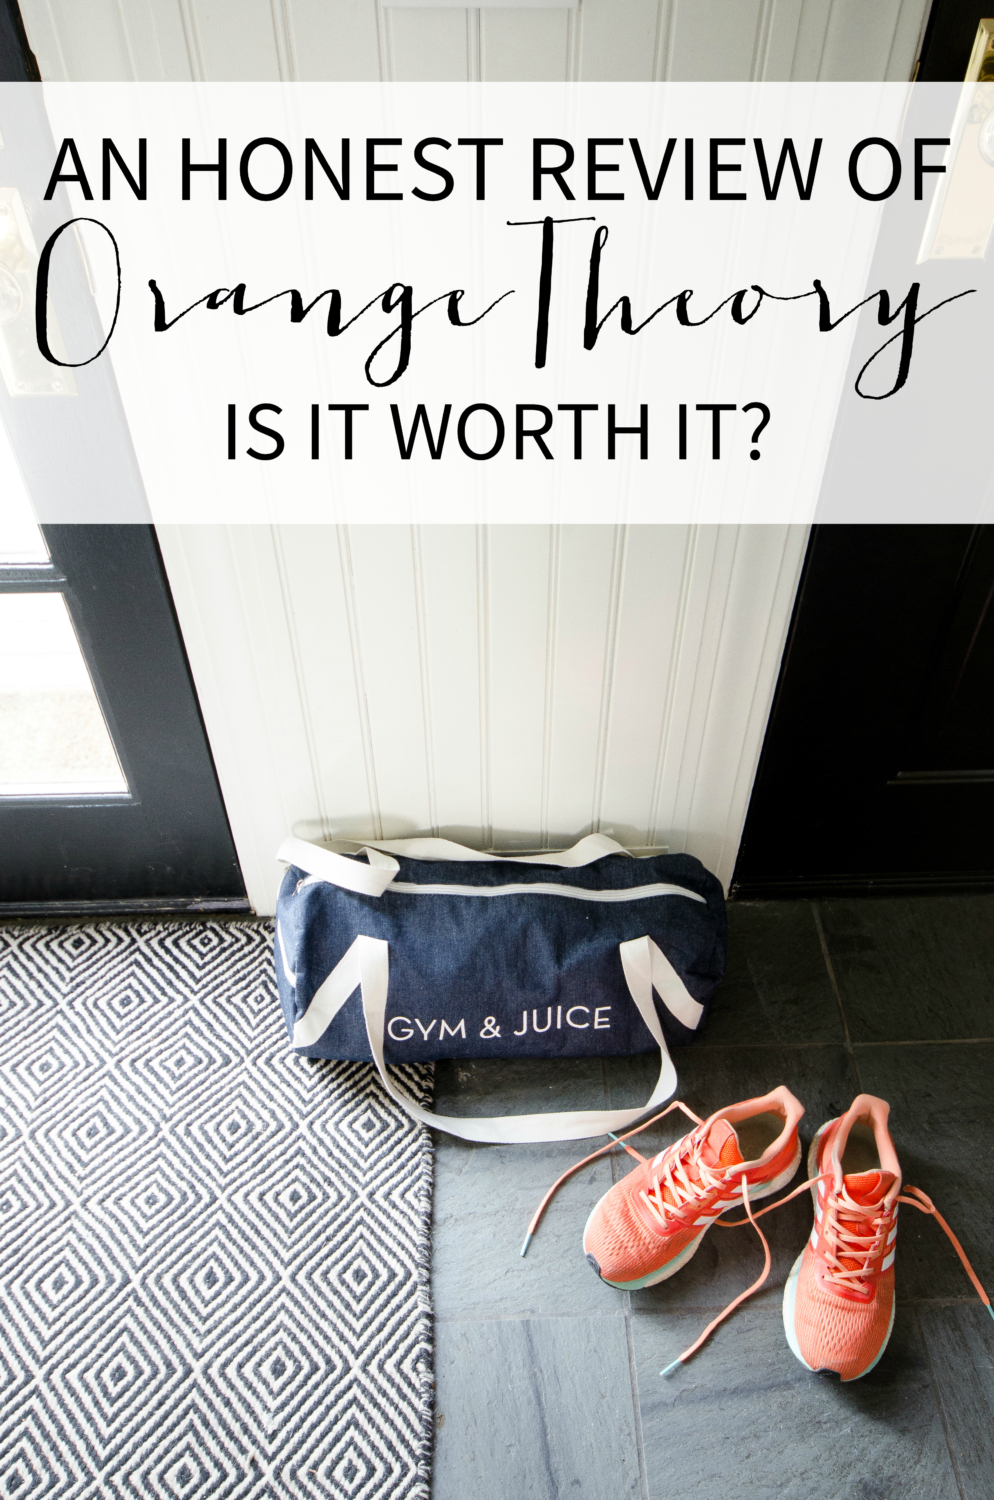 An Orange Theory review that is totally honest and breaks down the pros and cons of joining an Orangetheory Fitness location. Written by someone who has gone consistently for the past year!